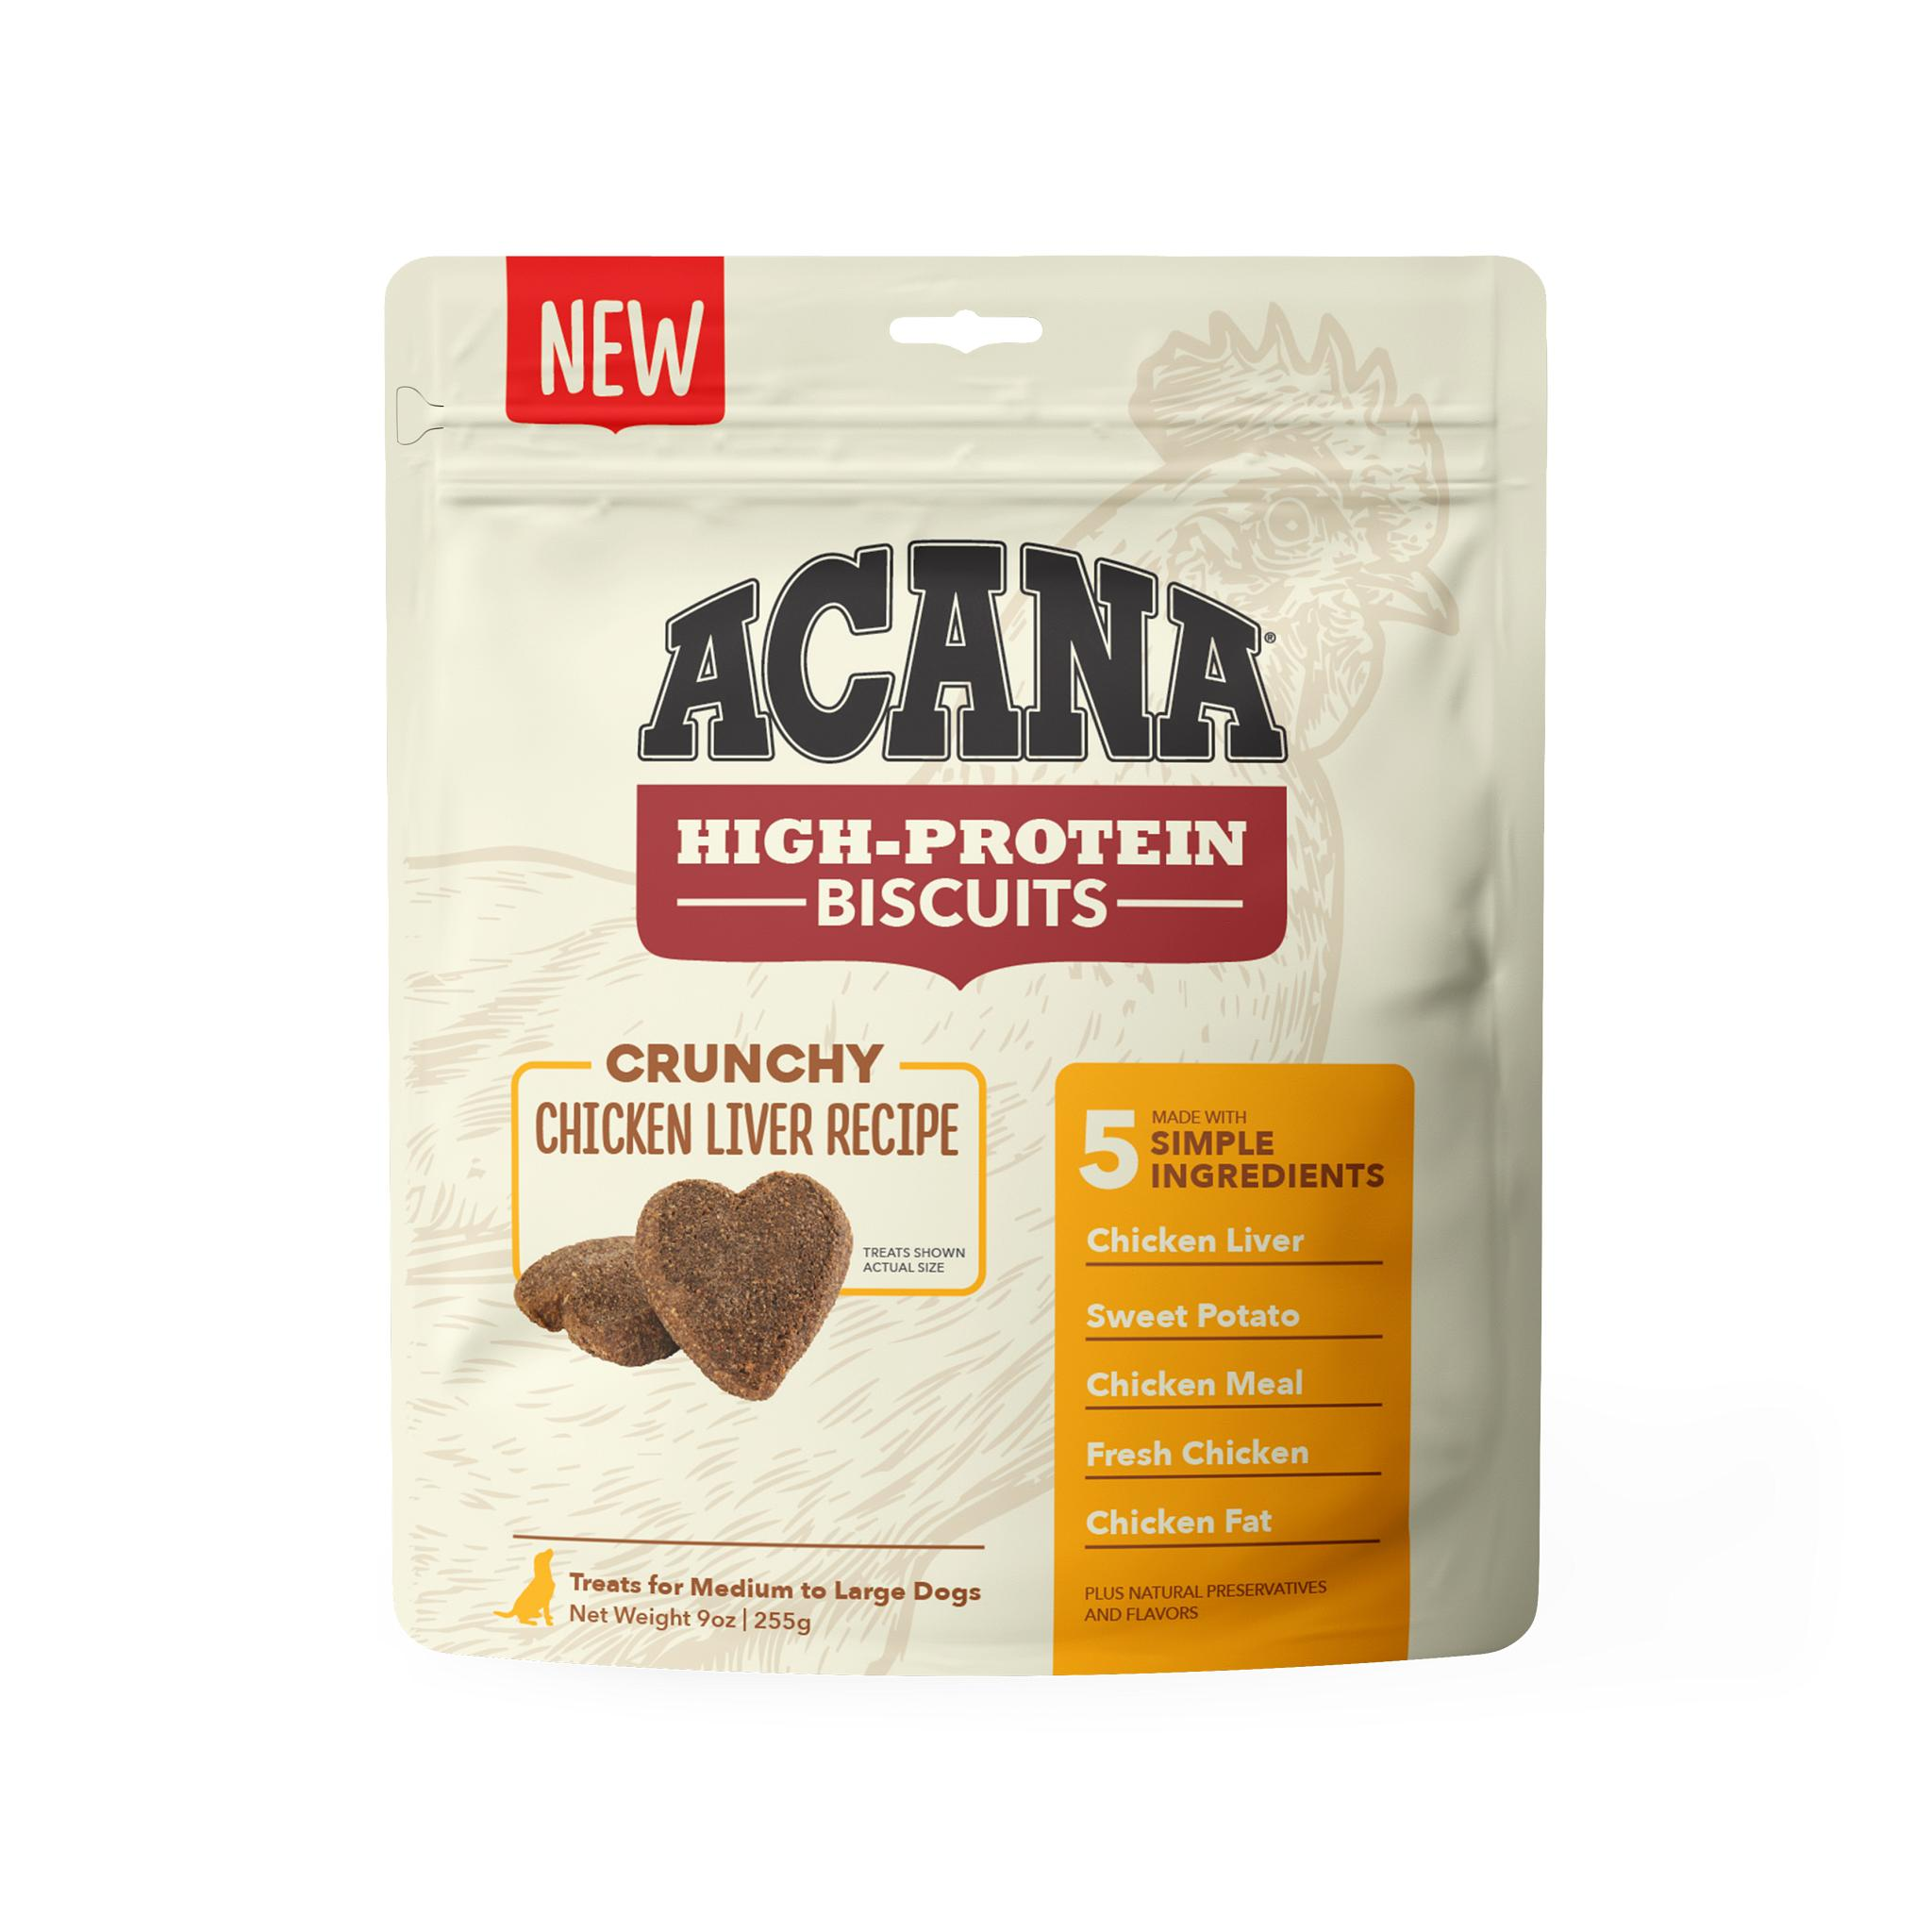 ACANA Crunchy Biscuits Chicken Liver Recipe Dog Treats, Large